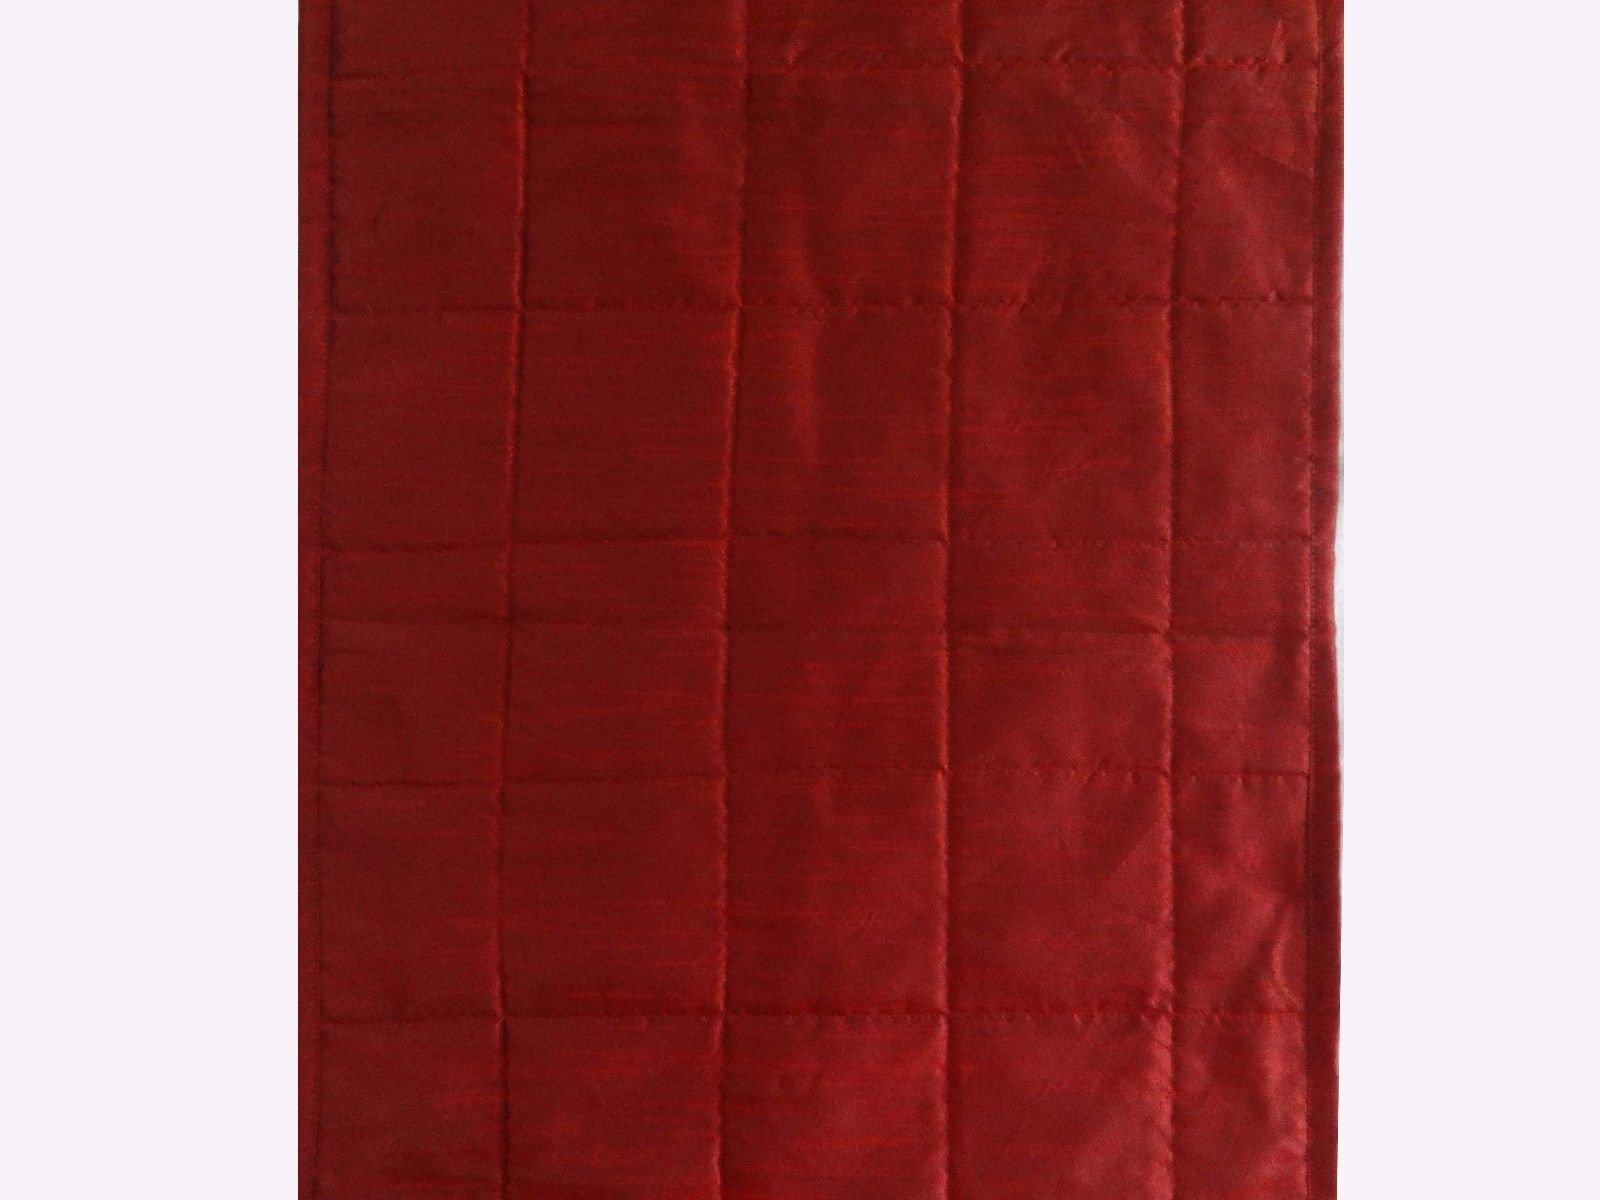 Quilted Bed Runner - Burgundy Bed Scarf Long Side Runner Throw King/Queen/Twin Size with Decorative Cushion Cover Polyester 20'' Wide X 102'' Long (50 cm x 300 cm)